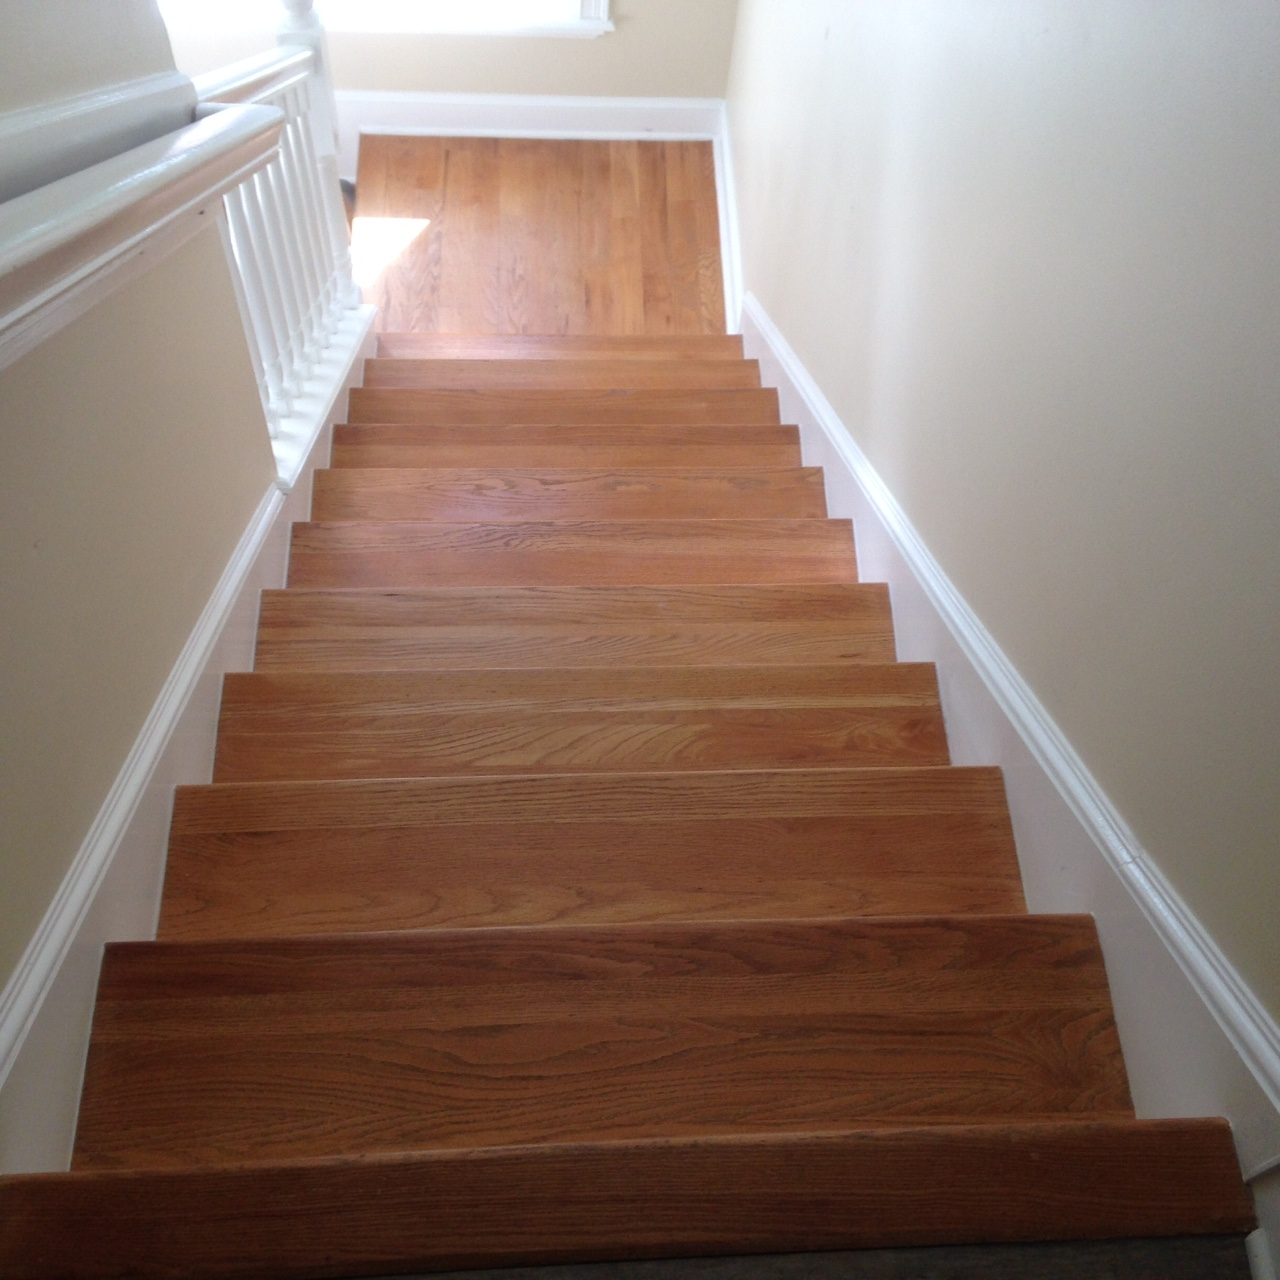 Wood Floor Repair Sand And Stain In Ponte Vedra Fl   Sanding And Staining Stairs   Pine   Stair Railing   Wood Stairs   Stair Case   Stair Risers